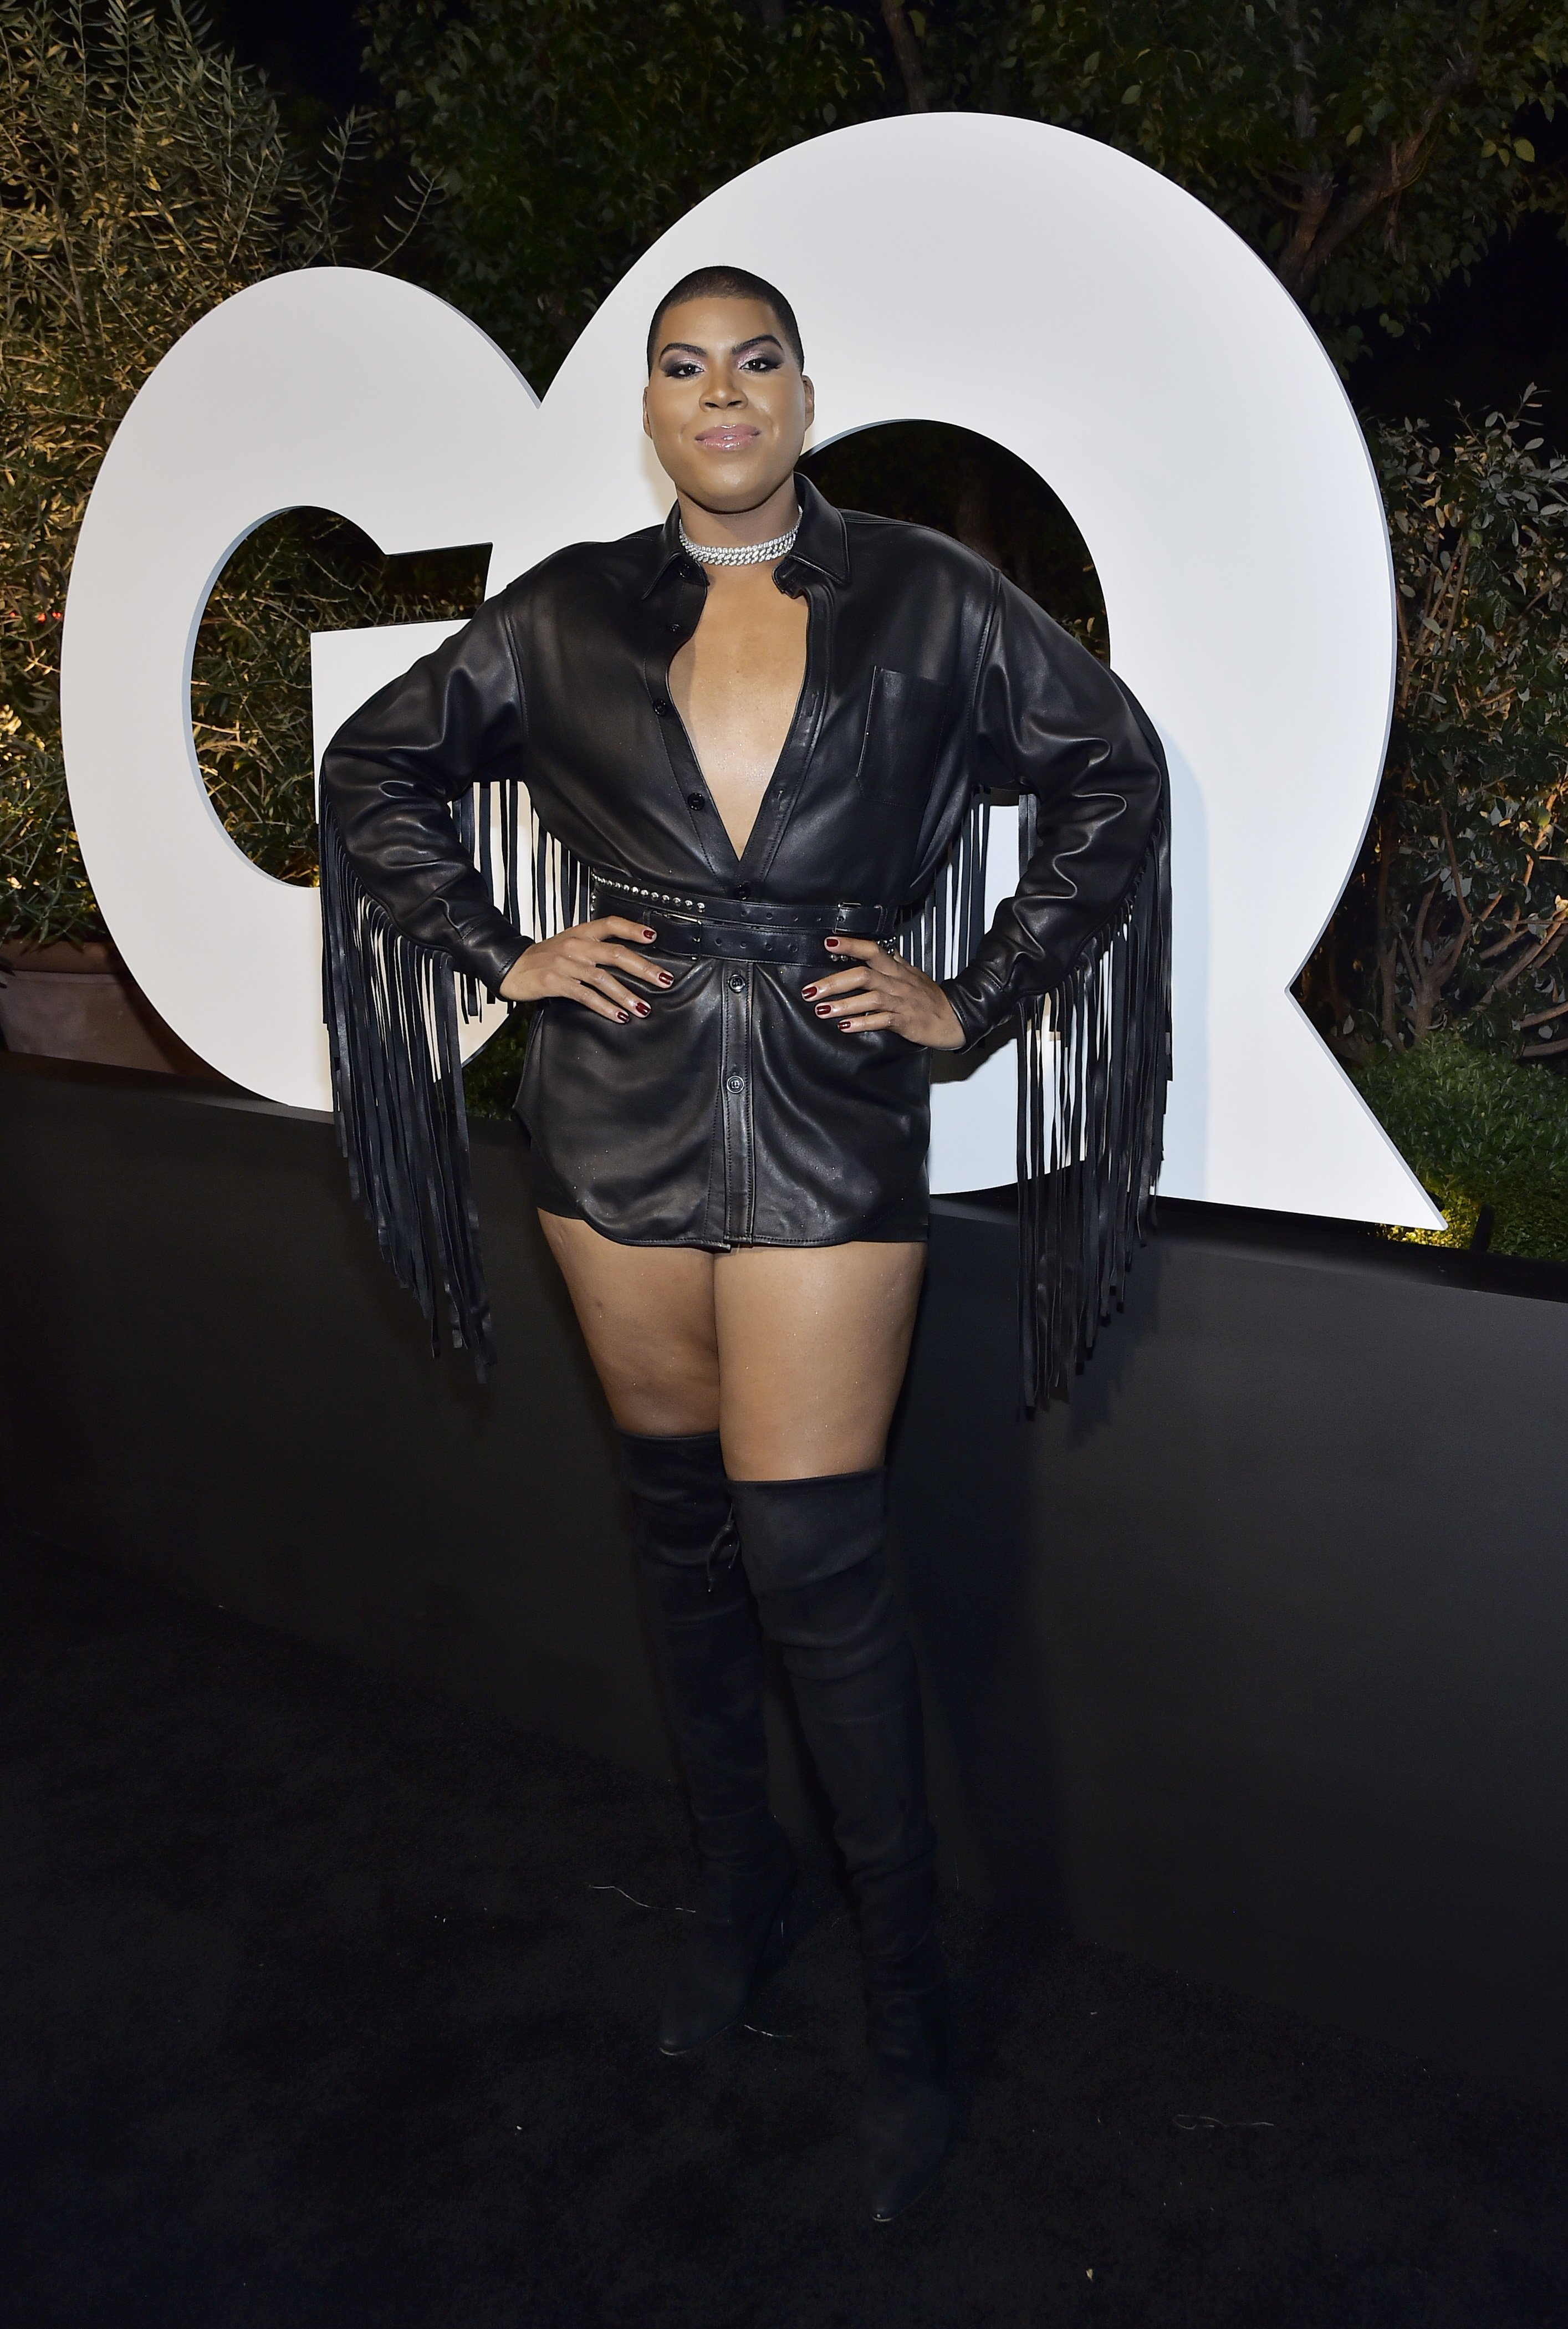 EJ Johnson a the 2019 GQ Men of the Year celebration on December 05, 2019 in West Hollywood, California   Photo: Getty Images